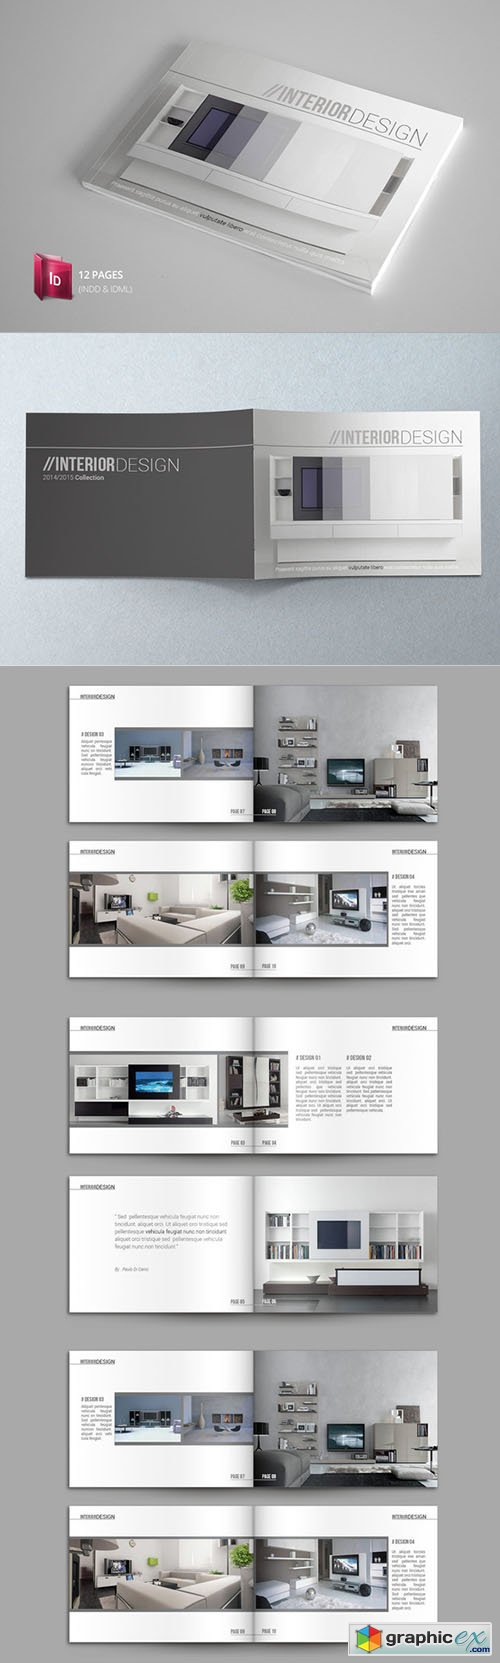 Indesign Catalogue Template | Template | Pinterest | Portafolio y ...